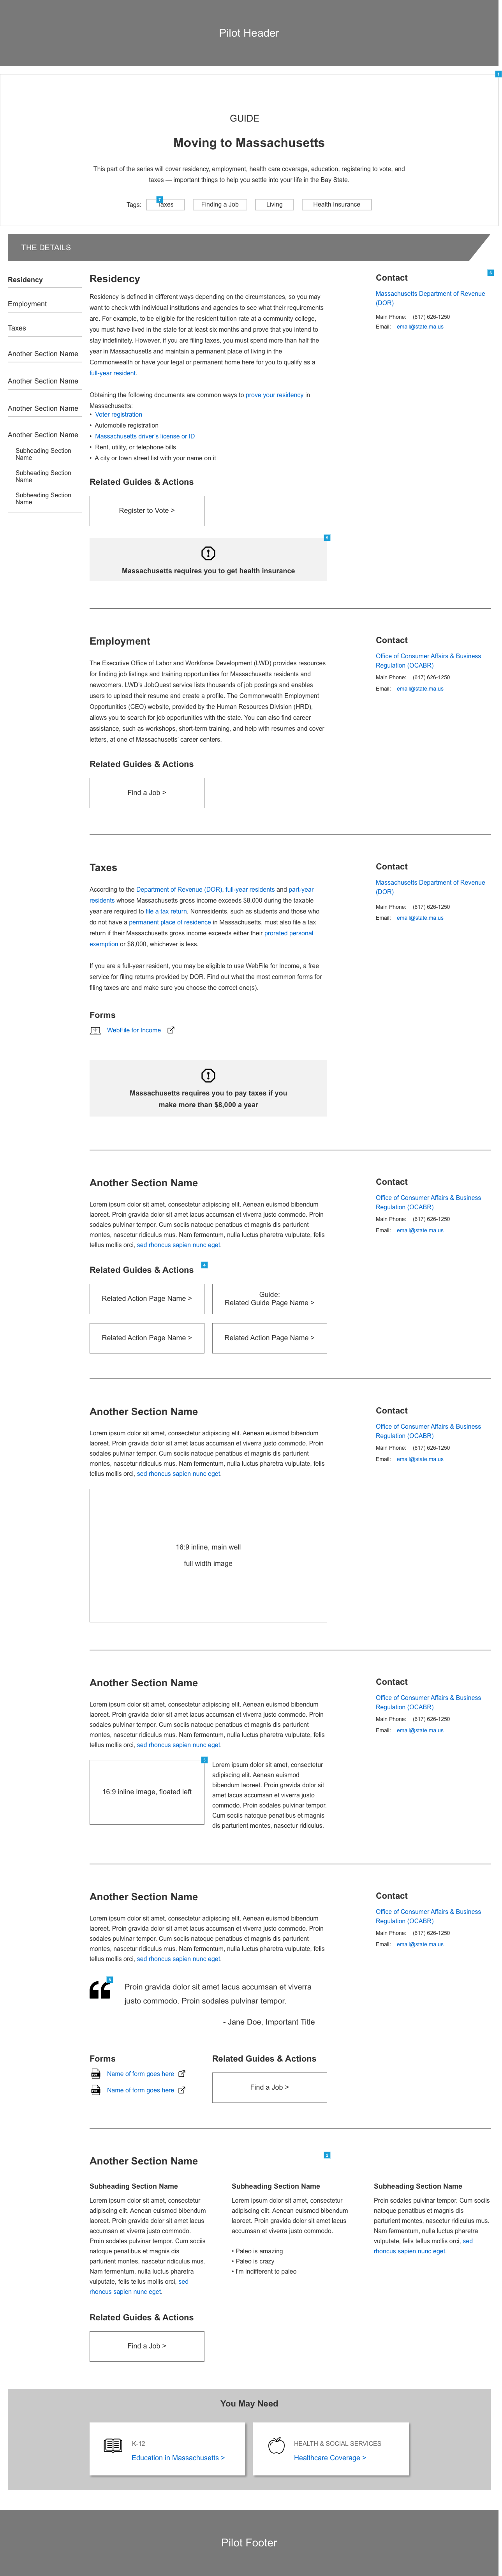 guide_page_type__single_page.png